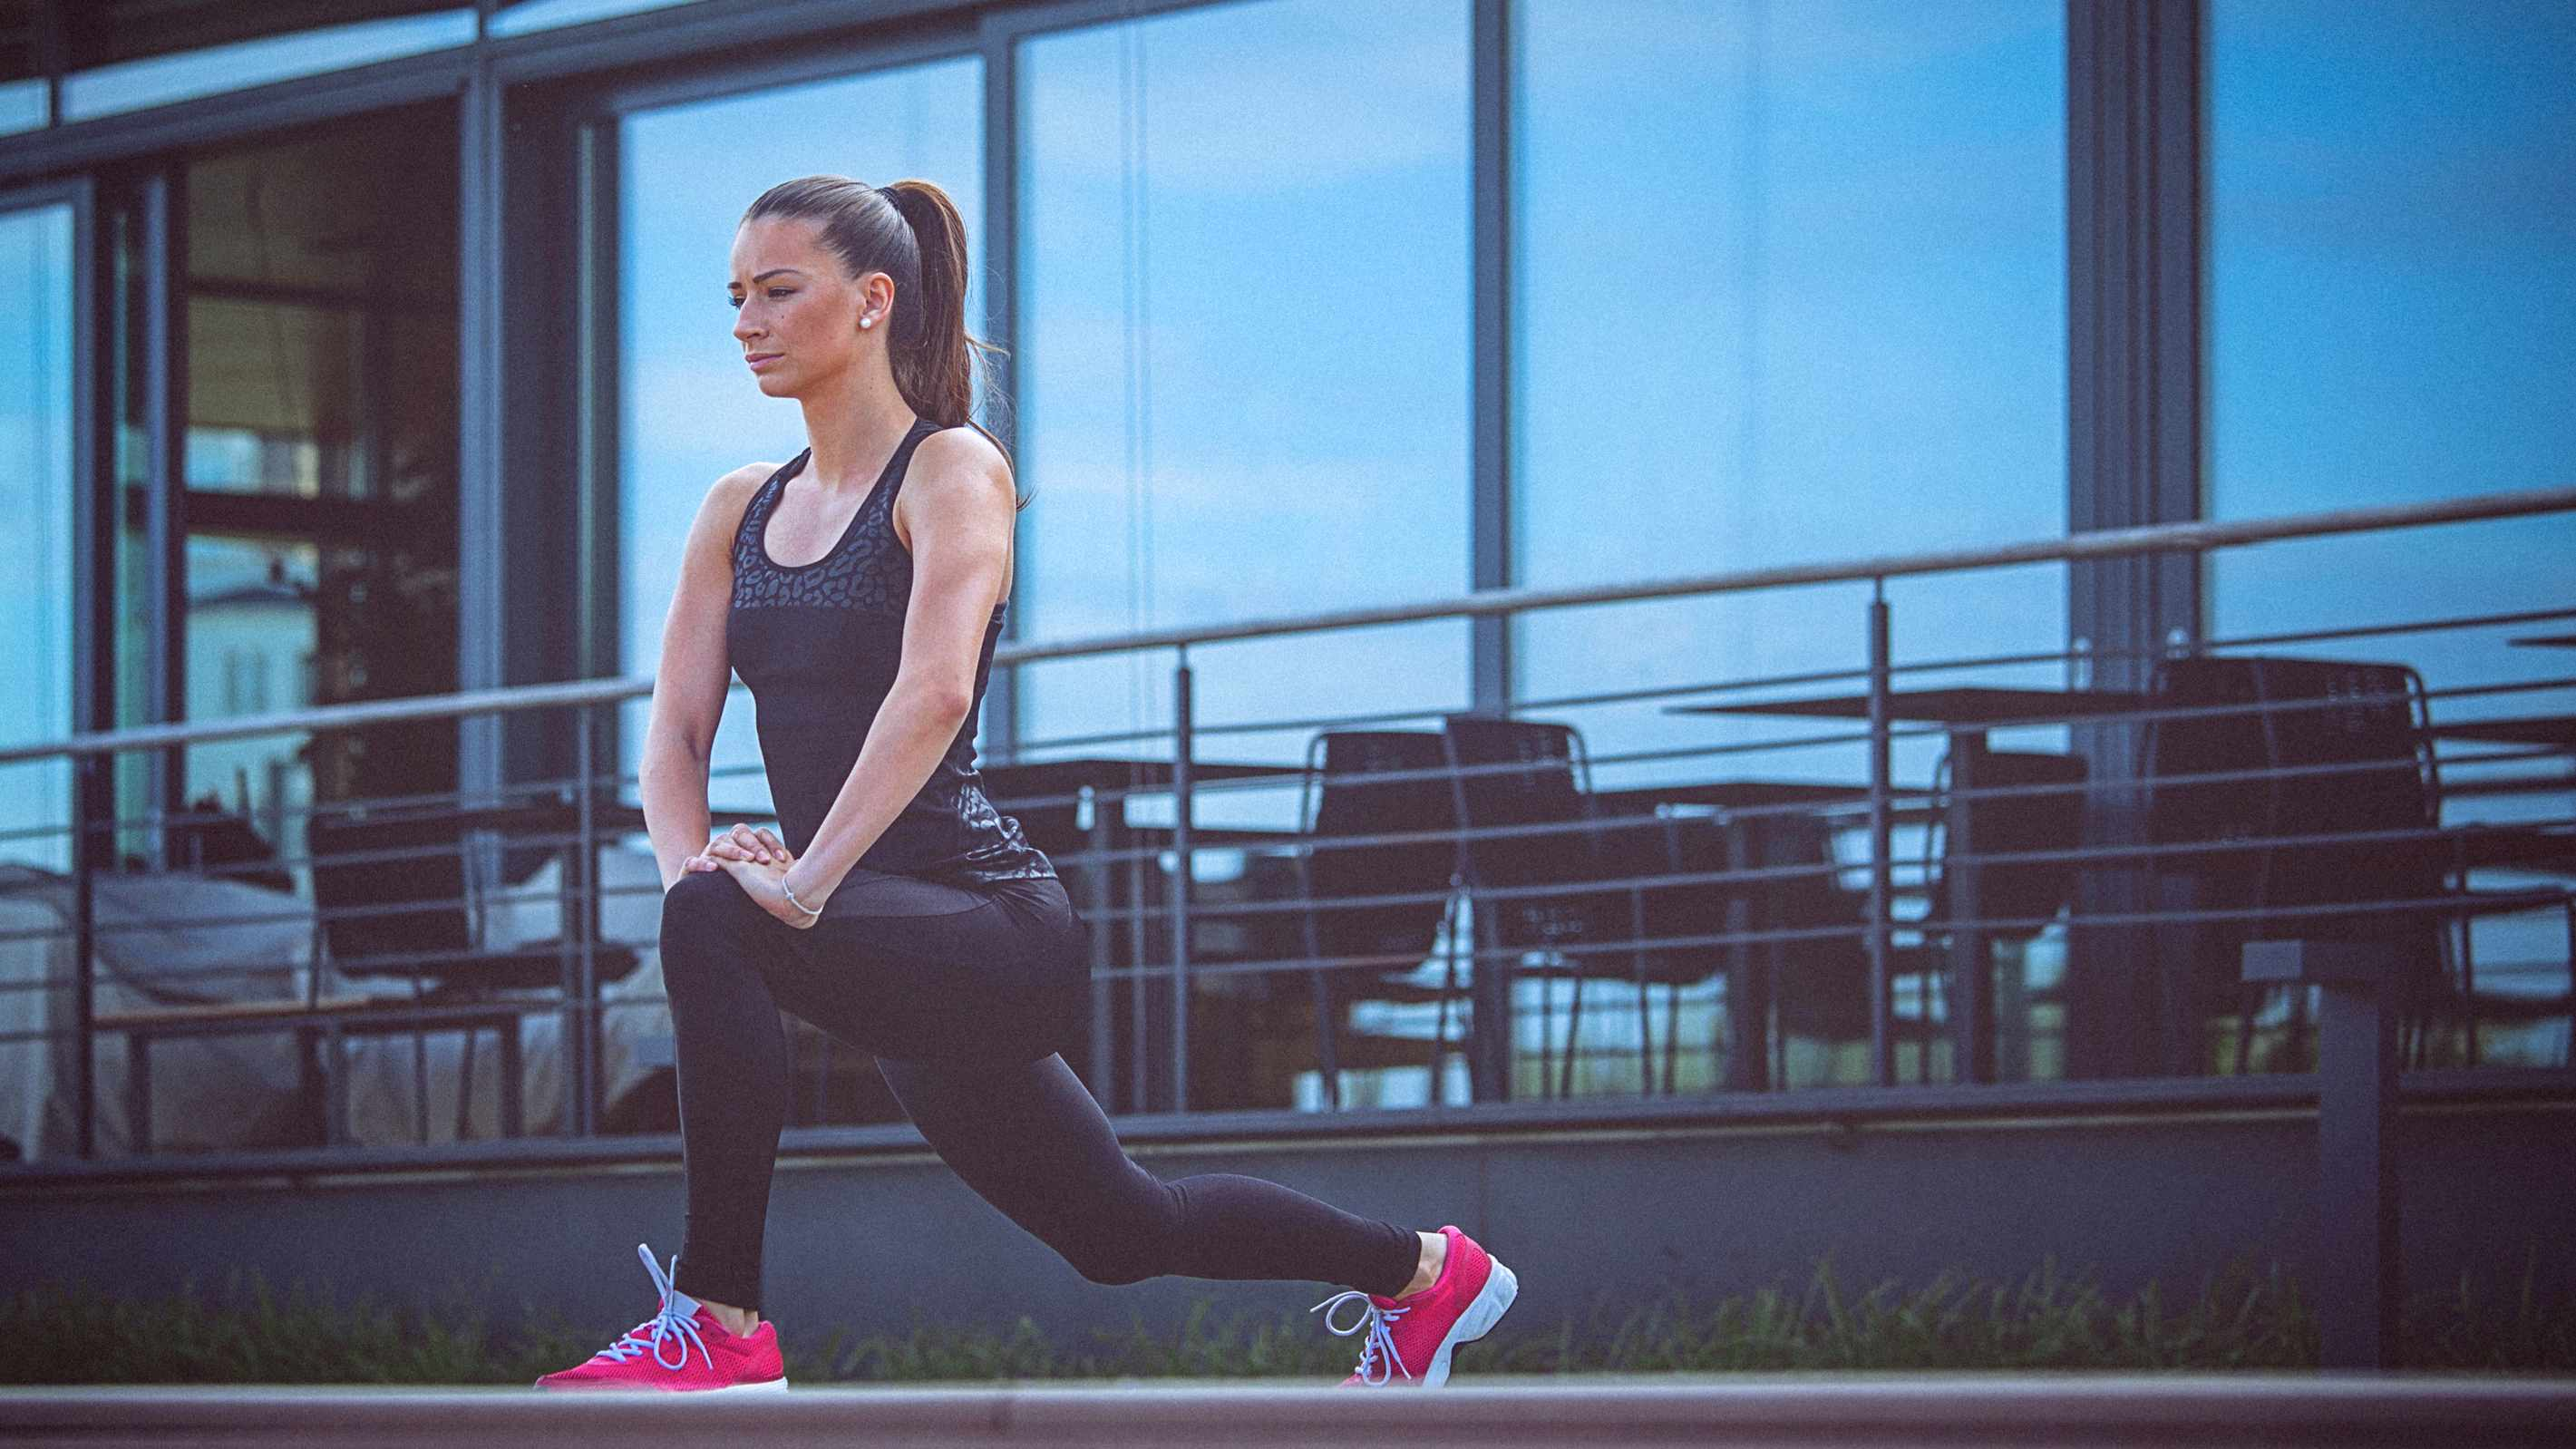 The stretching exercises here will help increase your flexibility